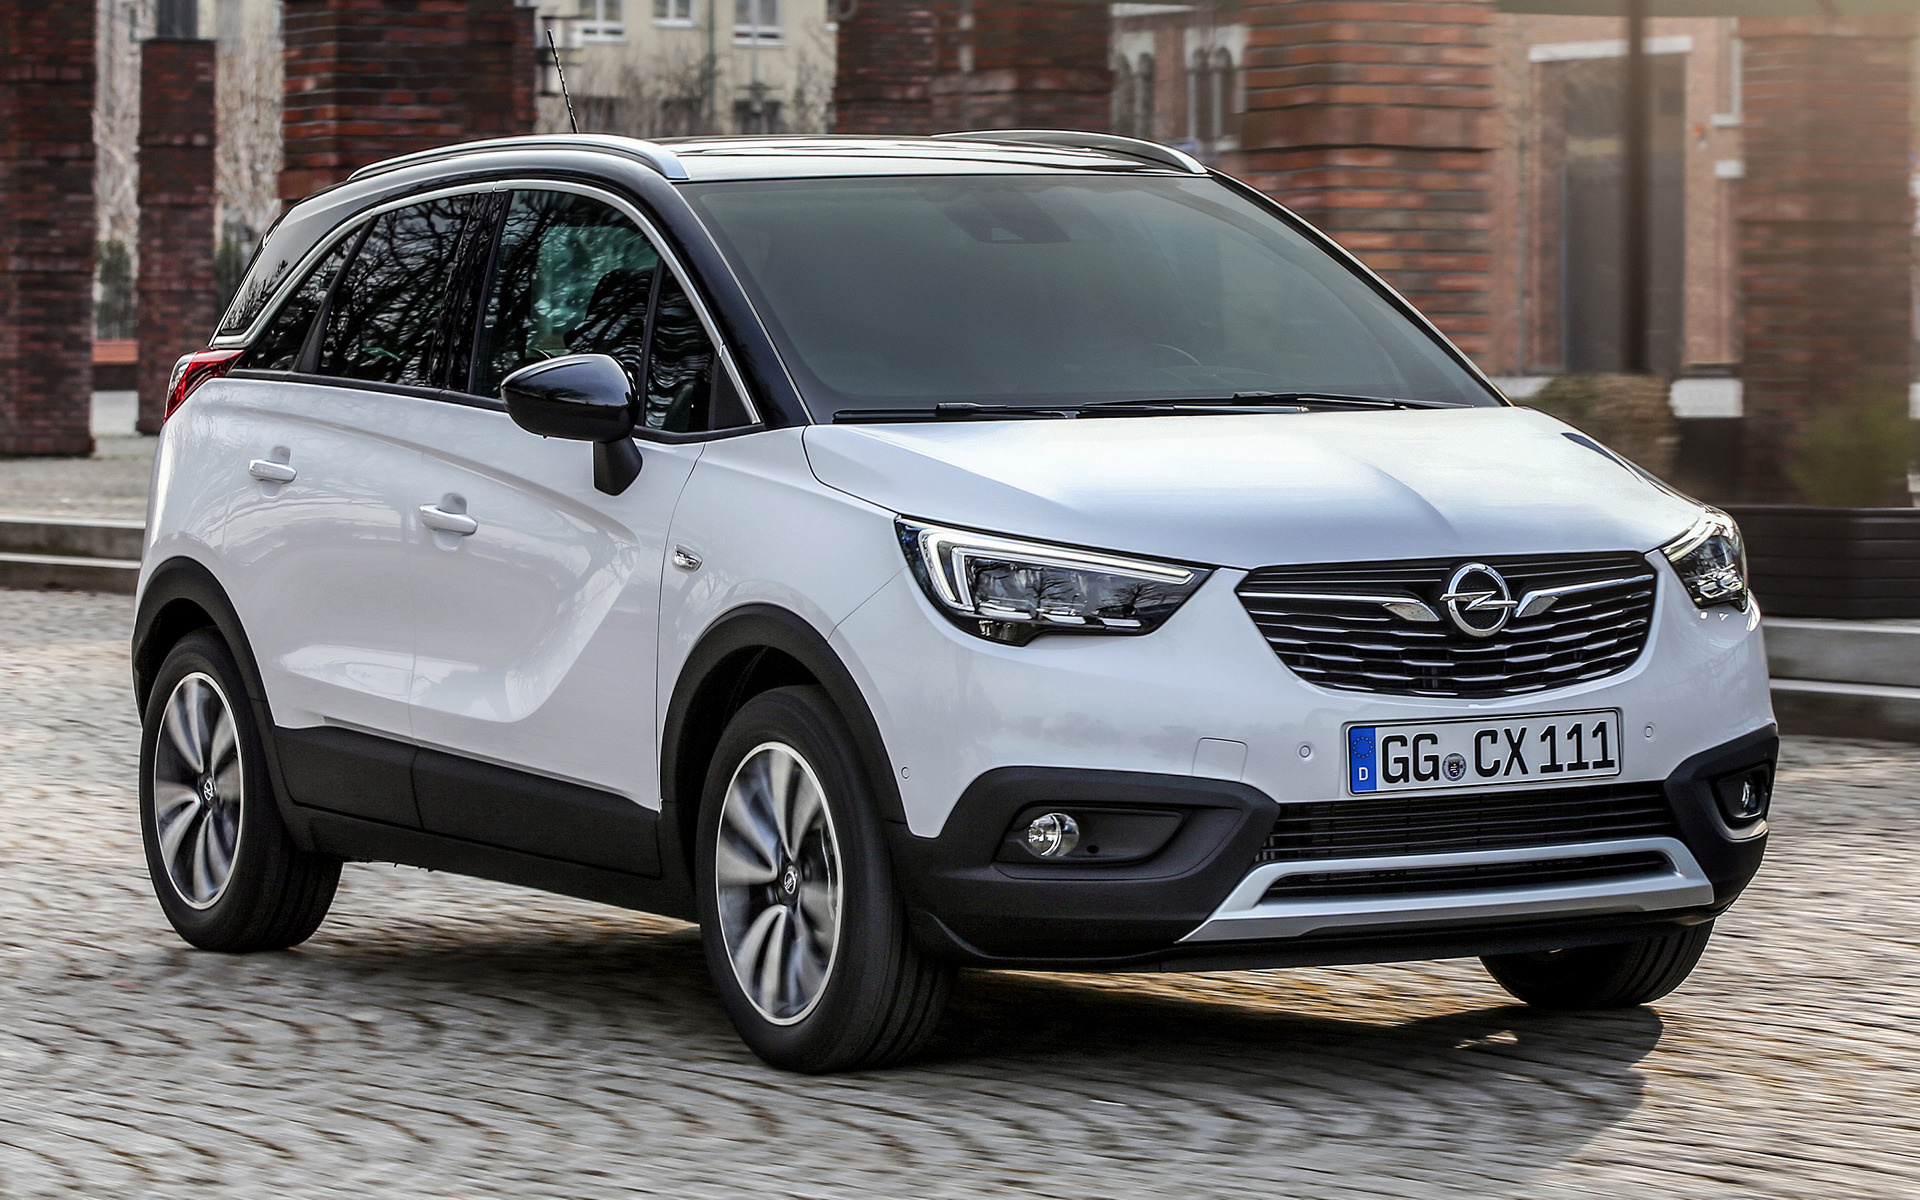 2017 Opel Crossland X - Wallpapers and HD Images | Car Pixel